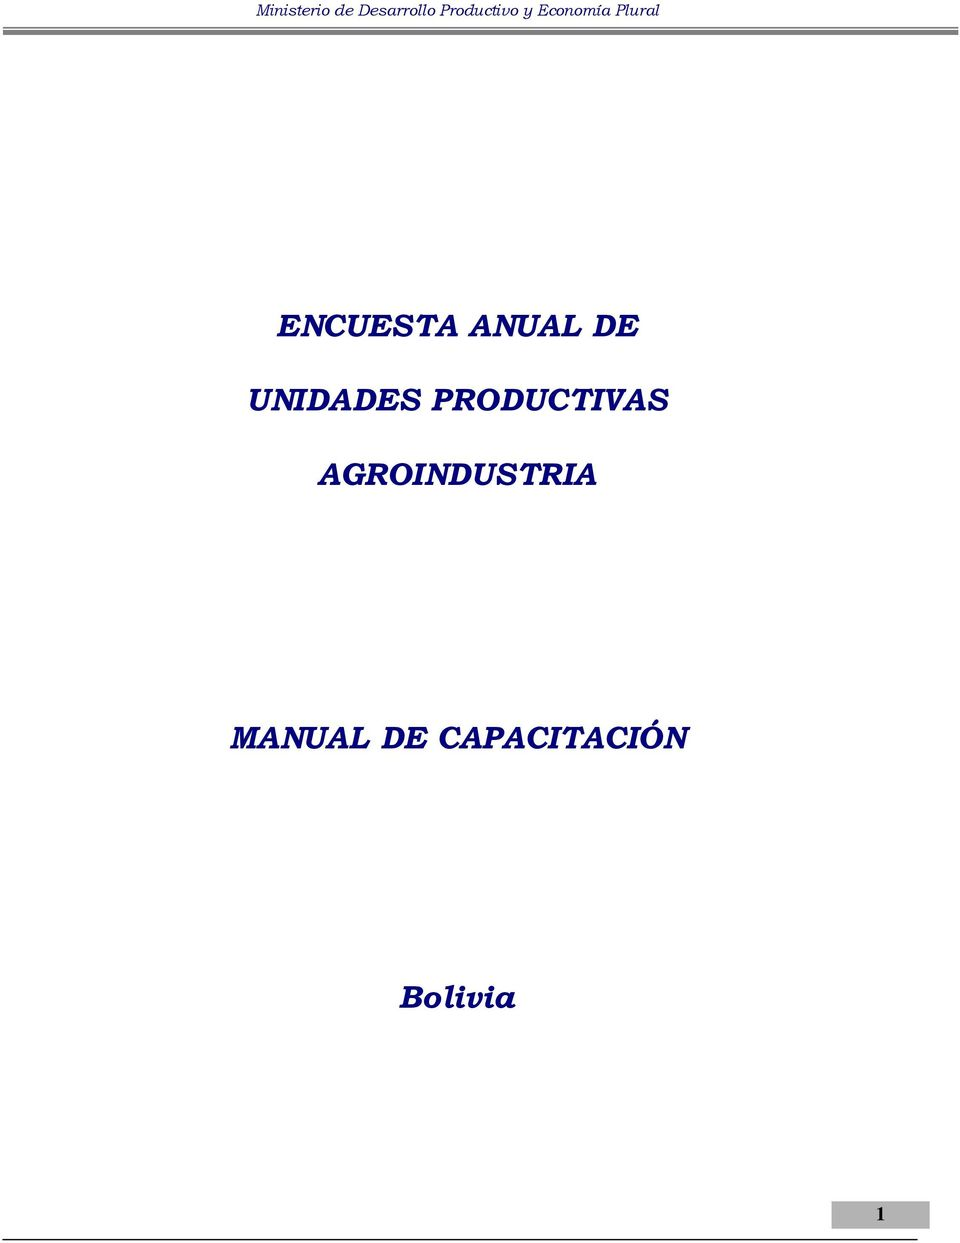 AGROINDUSTRIA MANUAL